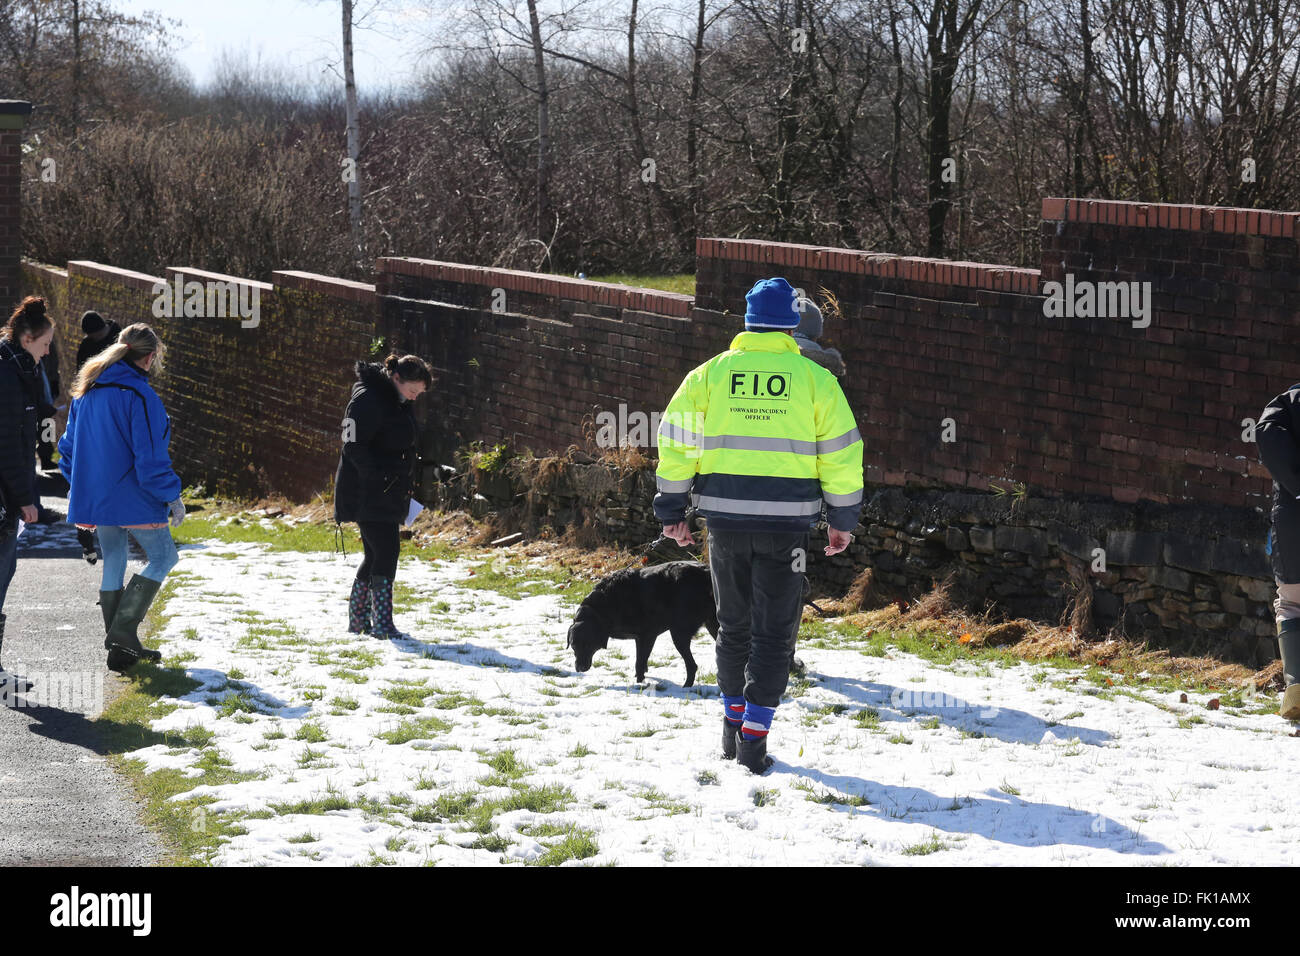 Rochdale, UK. 5th March, 2016. Police and members of the public search waste ground for clues to the disappearance - Stock Image